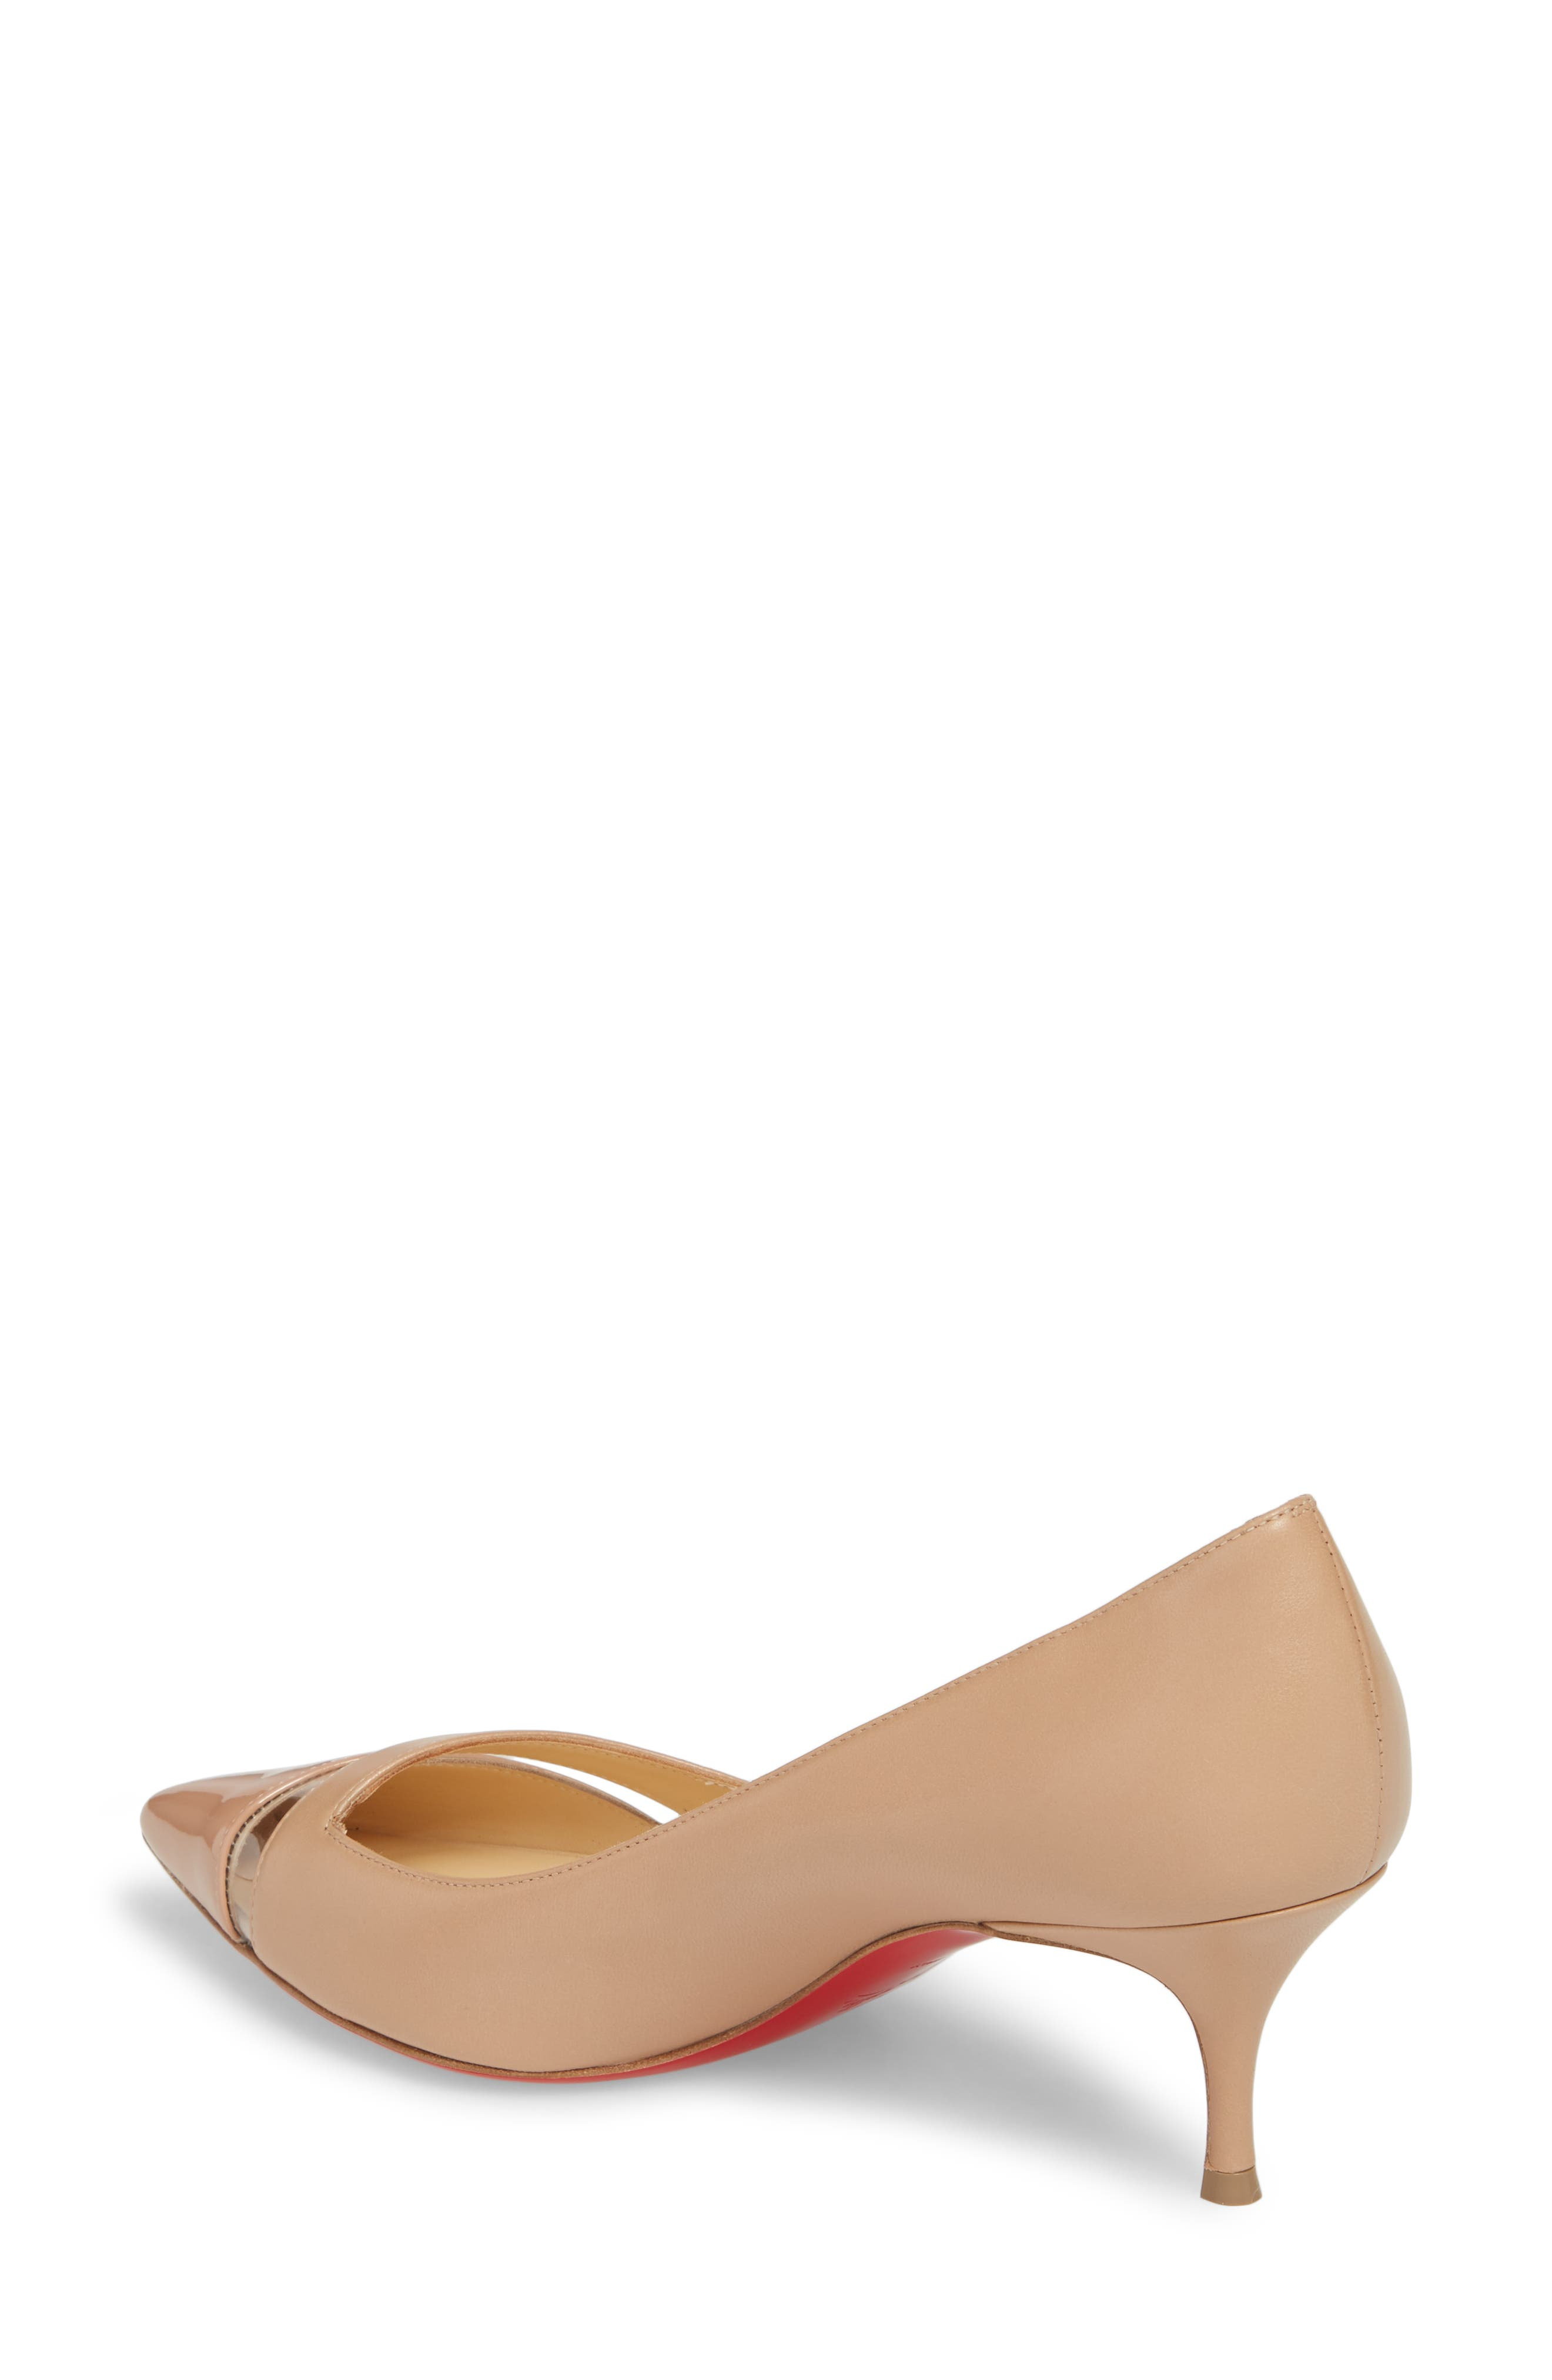 17th Floor Pointy Toe Pump,                             Alternate thumbnail 2, color,                             Nude